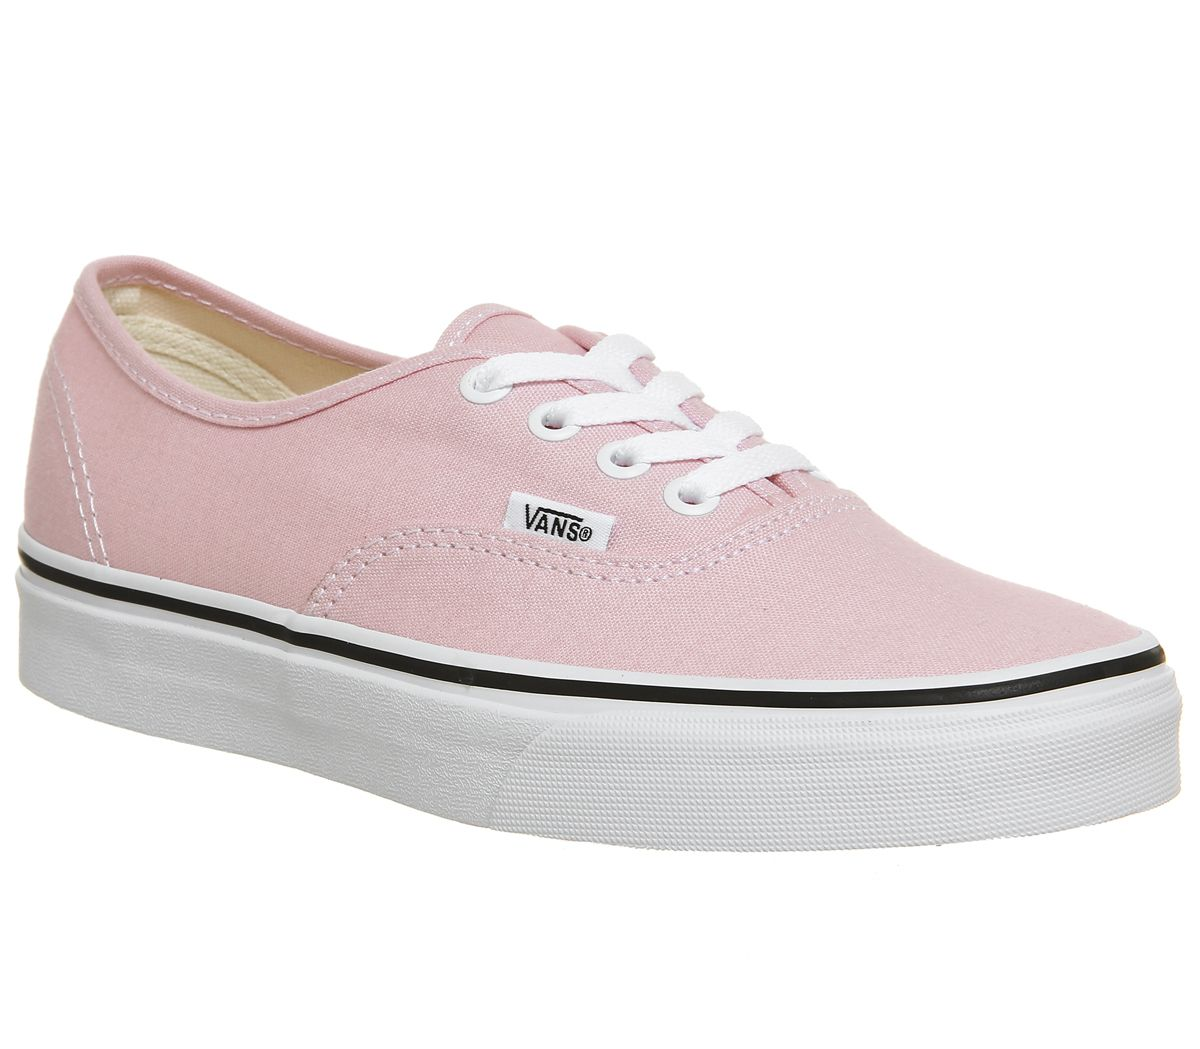 02e9521f42 Vans Authentic Trainers Chalk Pink True White - Hers trainers